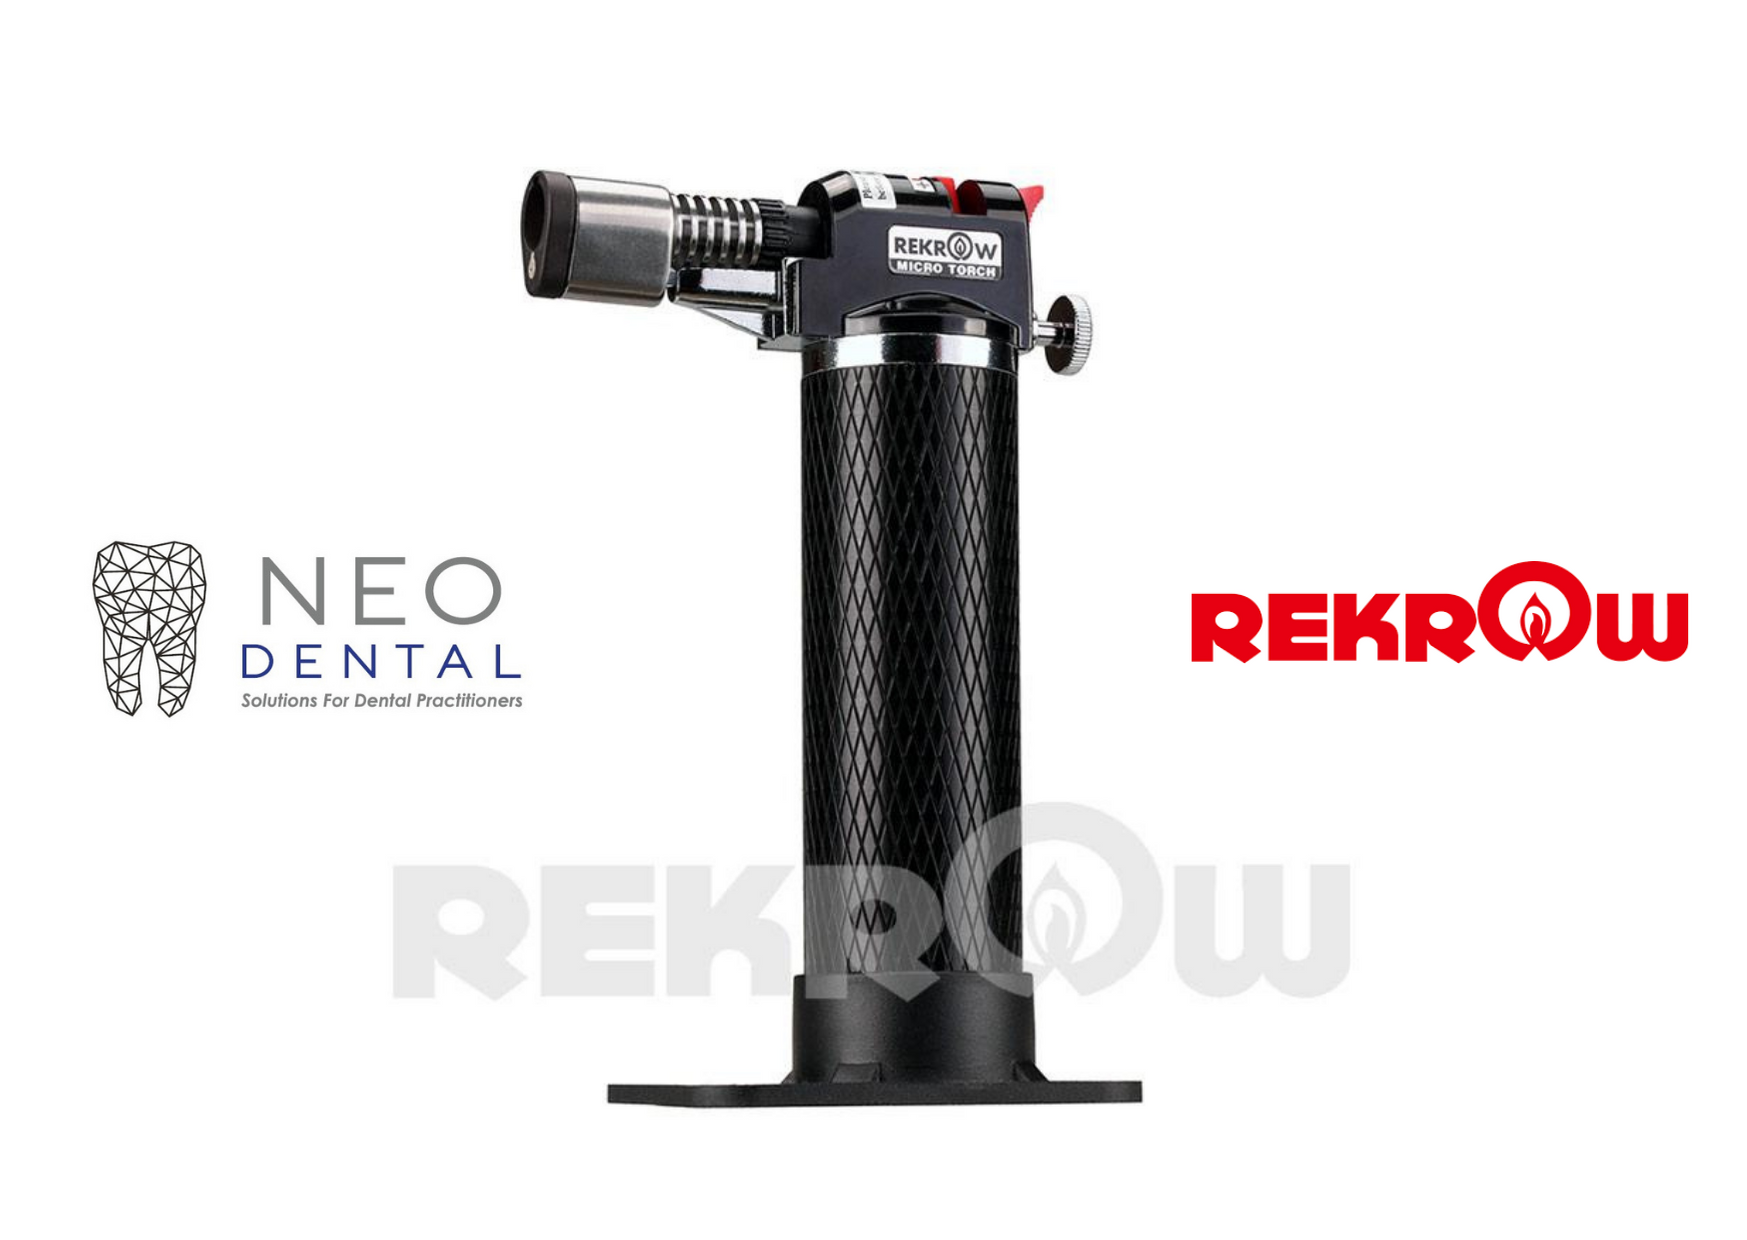 Butane Heating Micro Torch - Rekrow RK2050